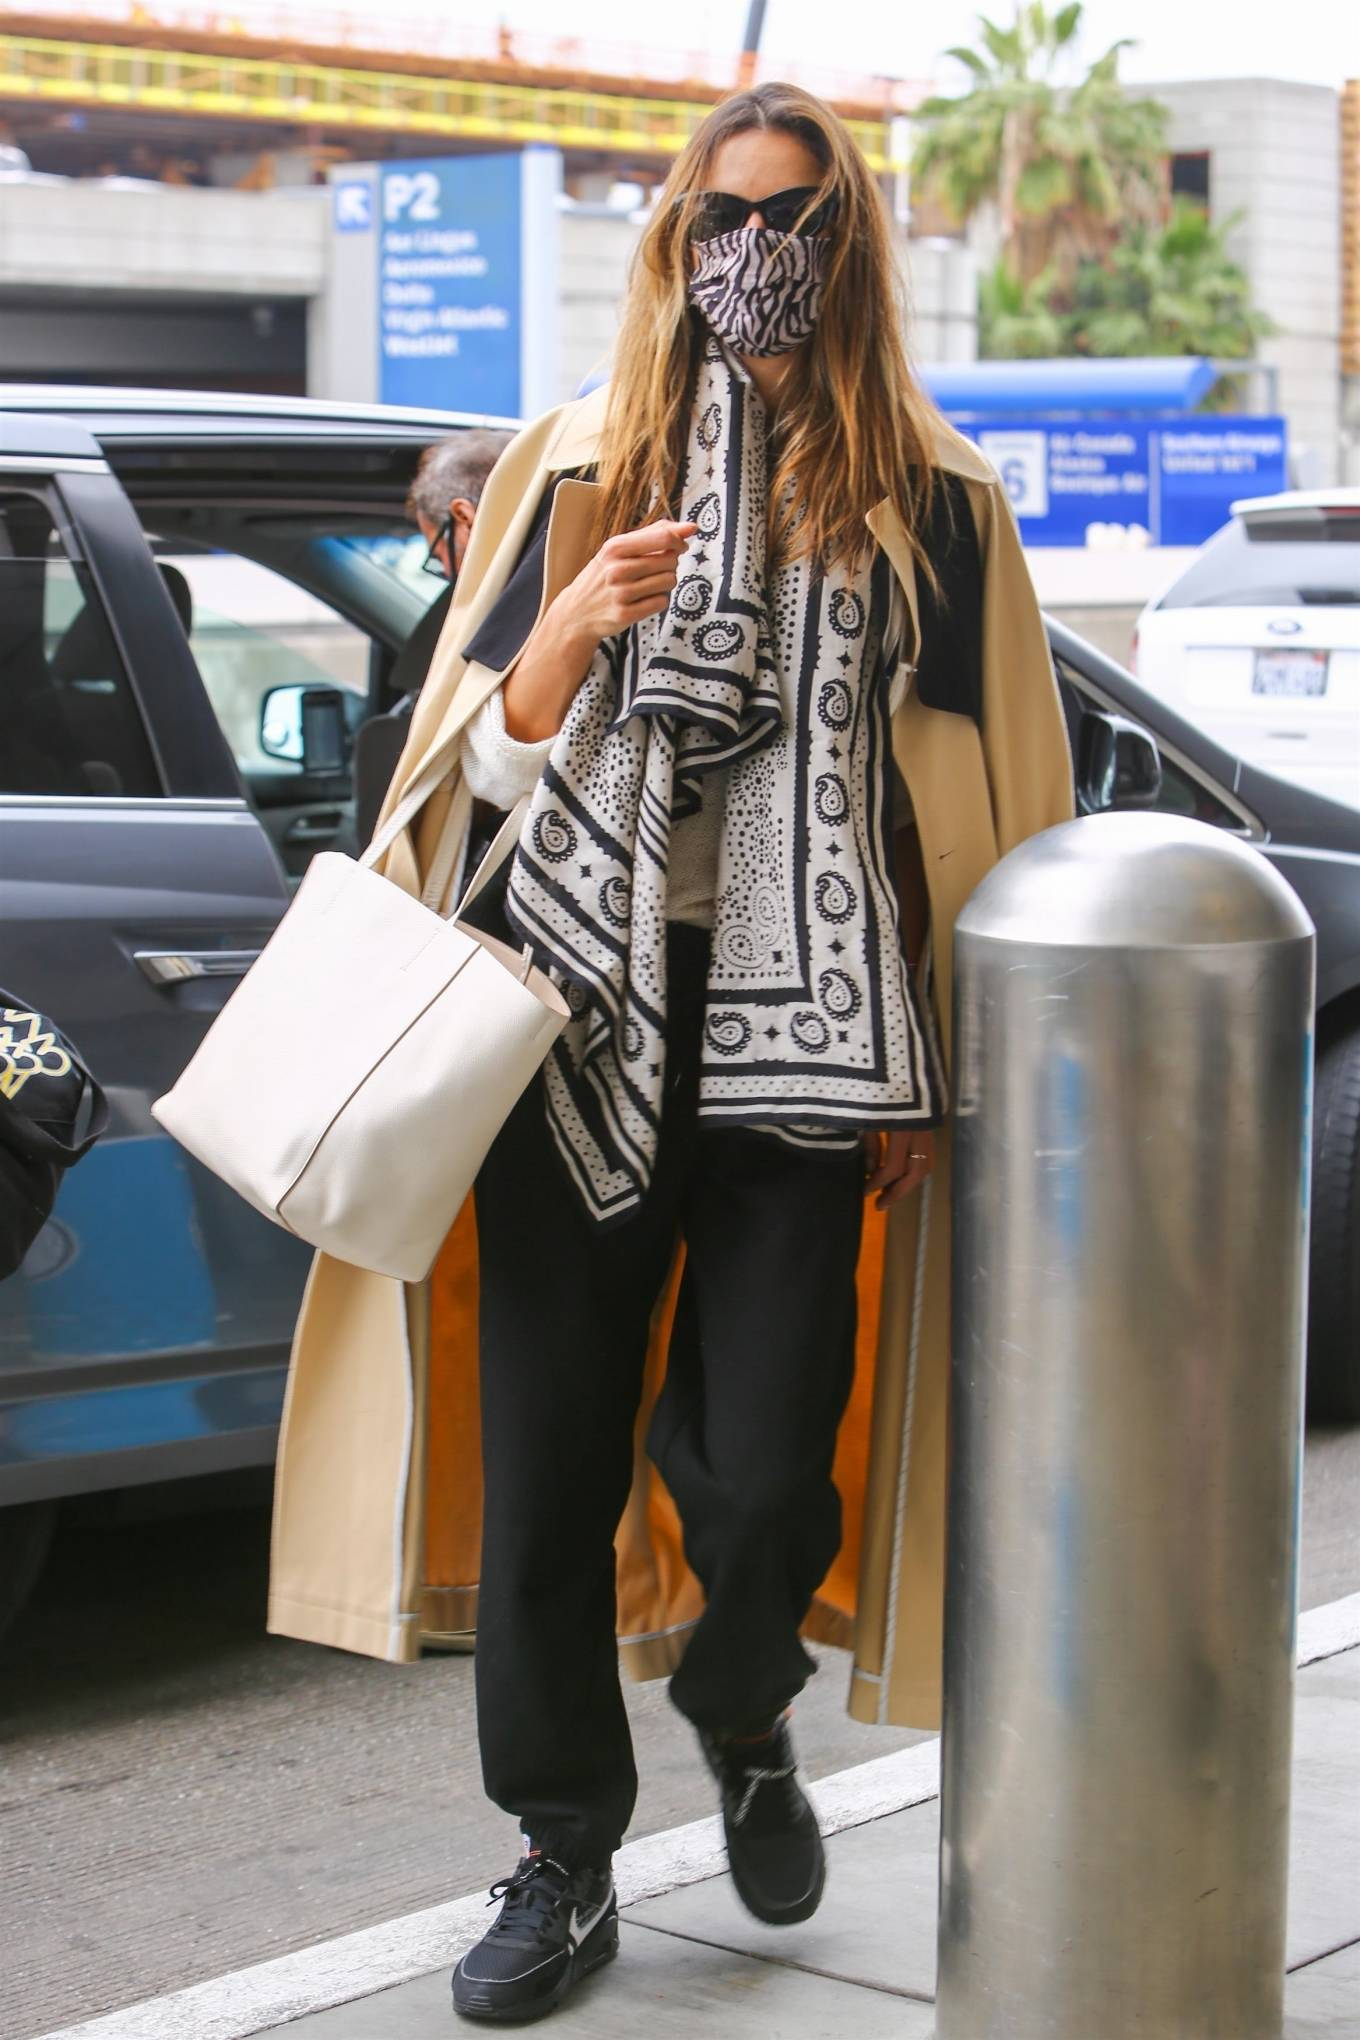 Alessandra Ambrosio rocking brand logo black Nike lace-up sneakers with flat heel